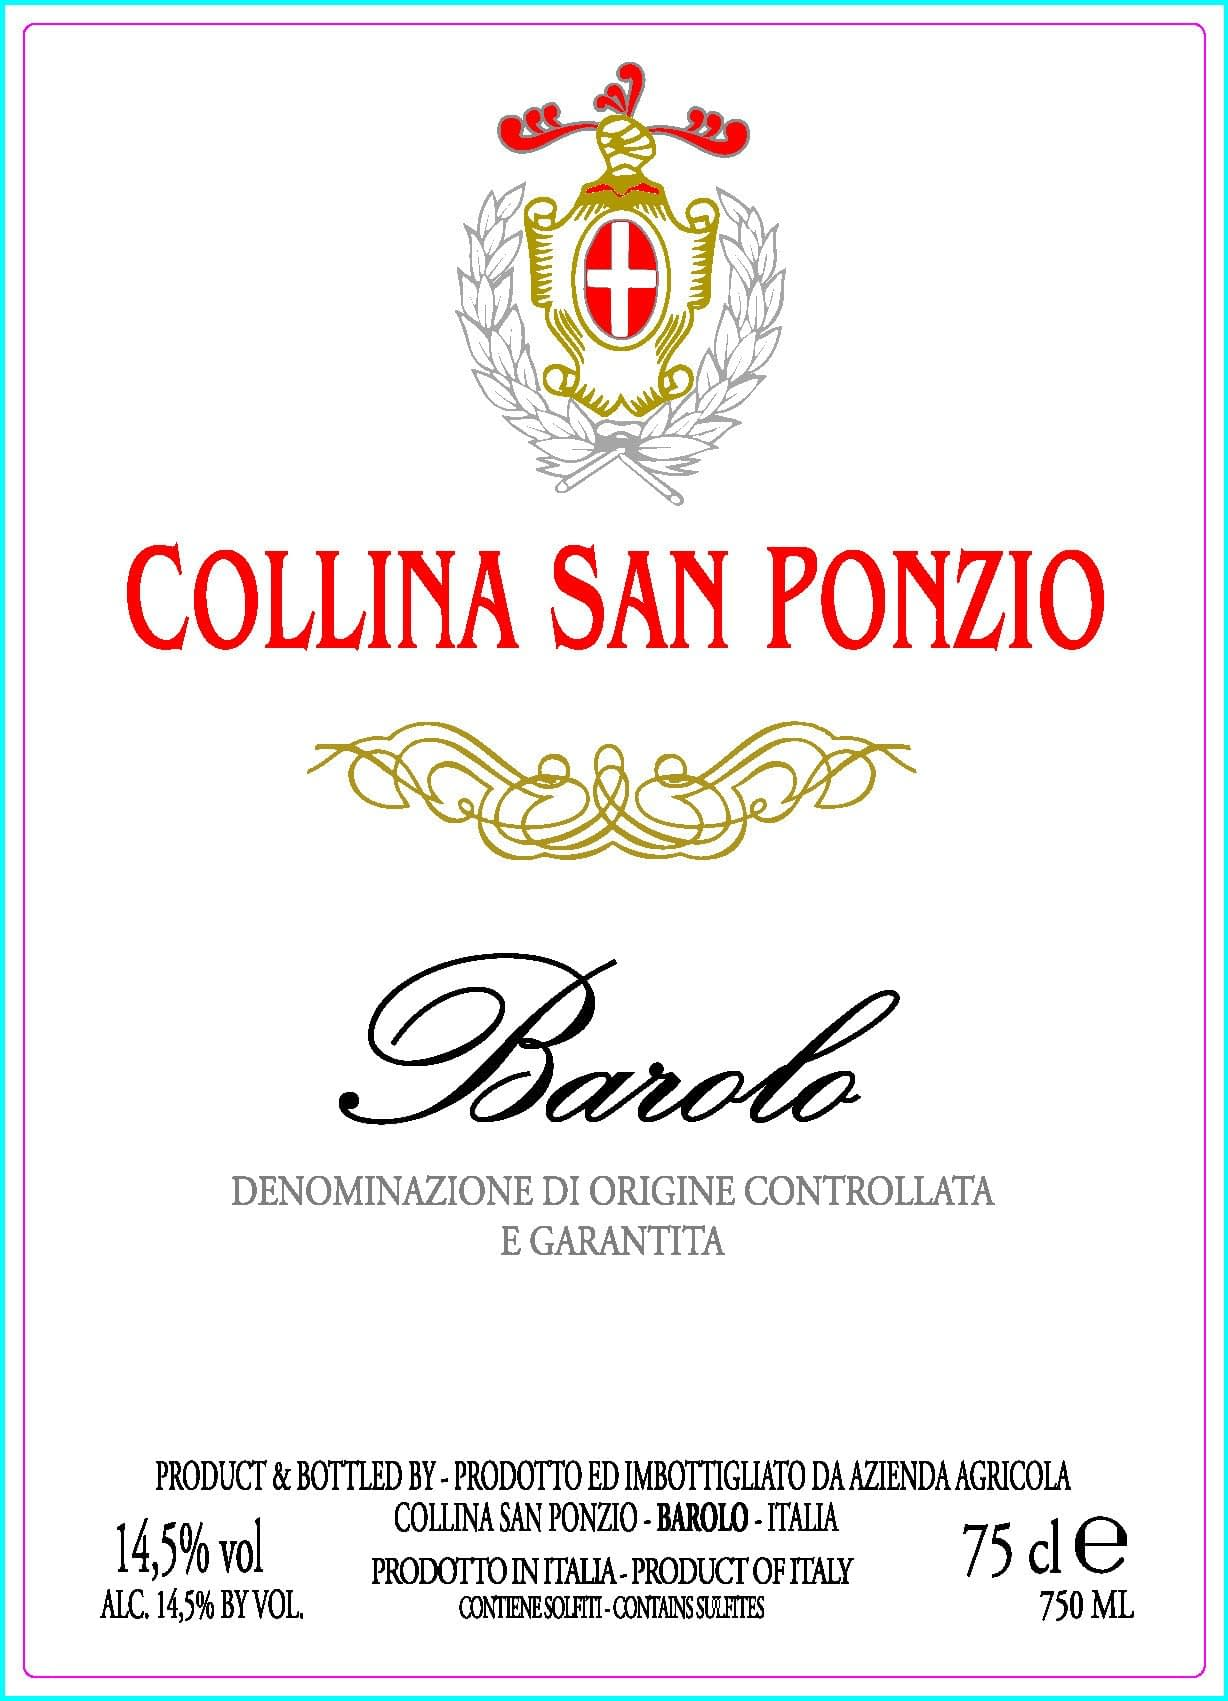 Collina of San Ponzio Barolo 2011